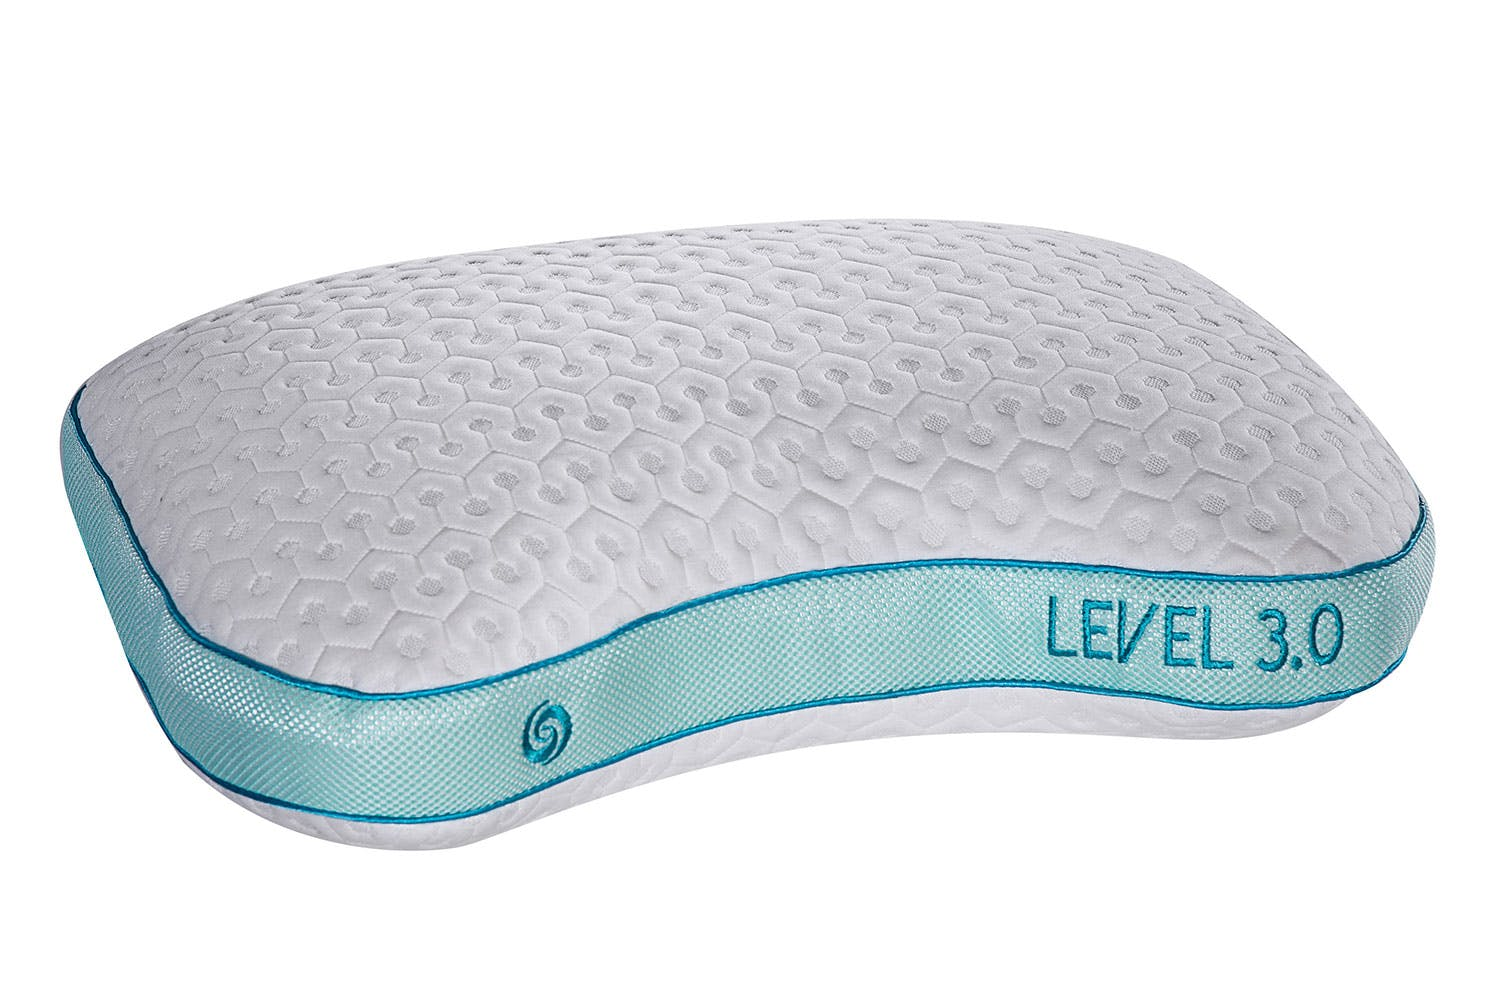 Image of Level Series 3.0 Pillow by Bedgear